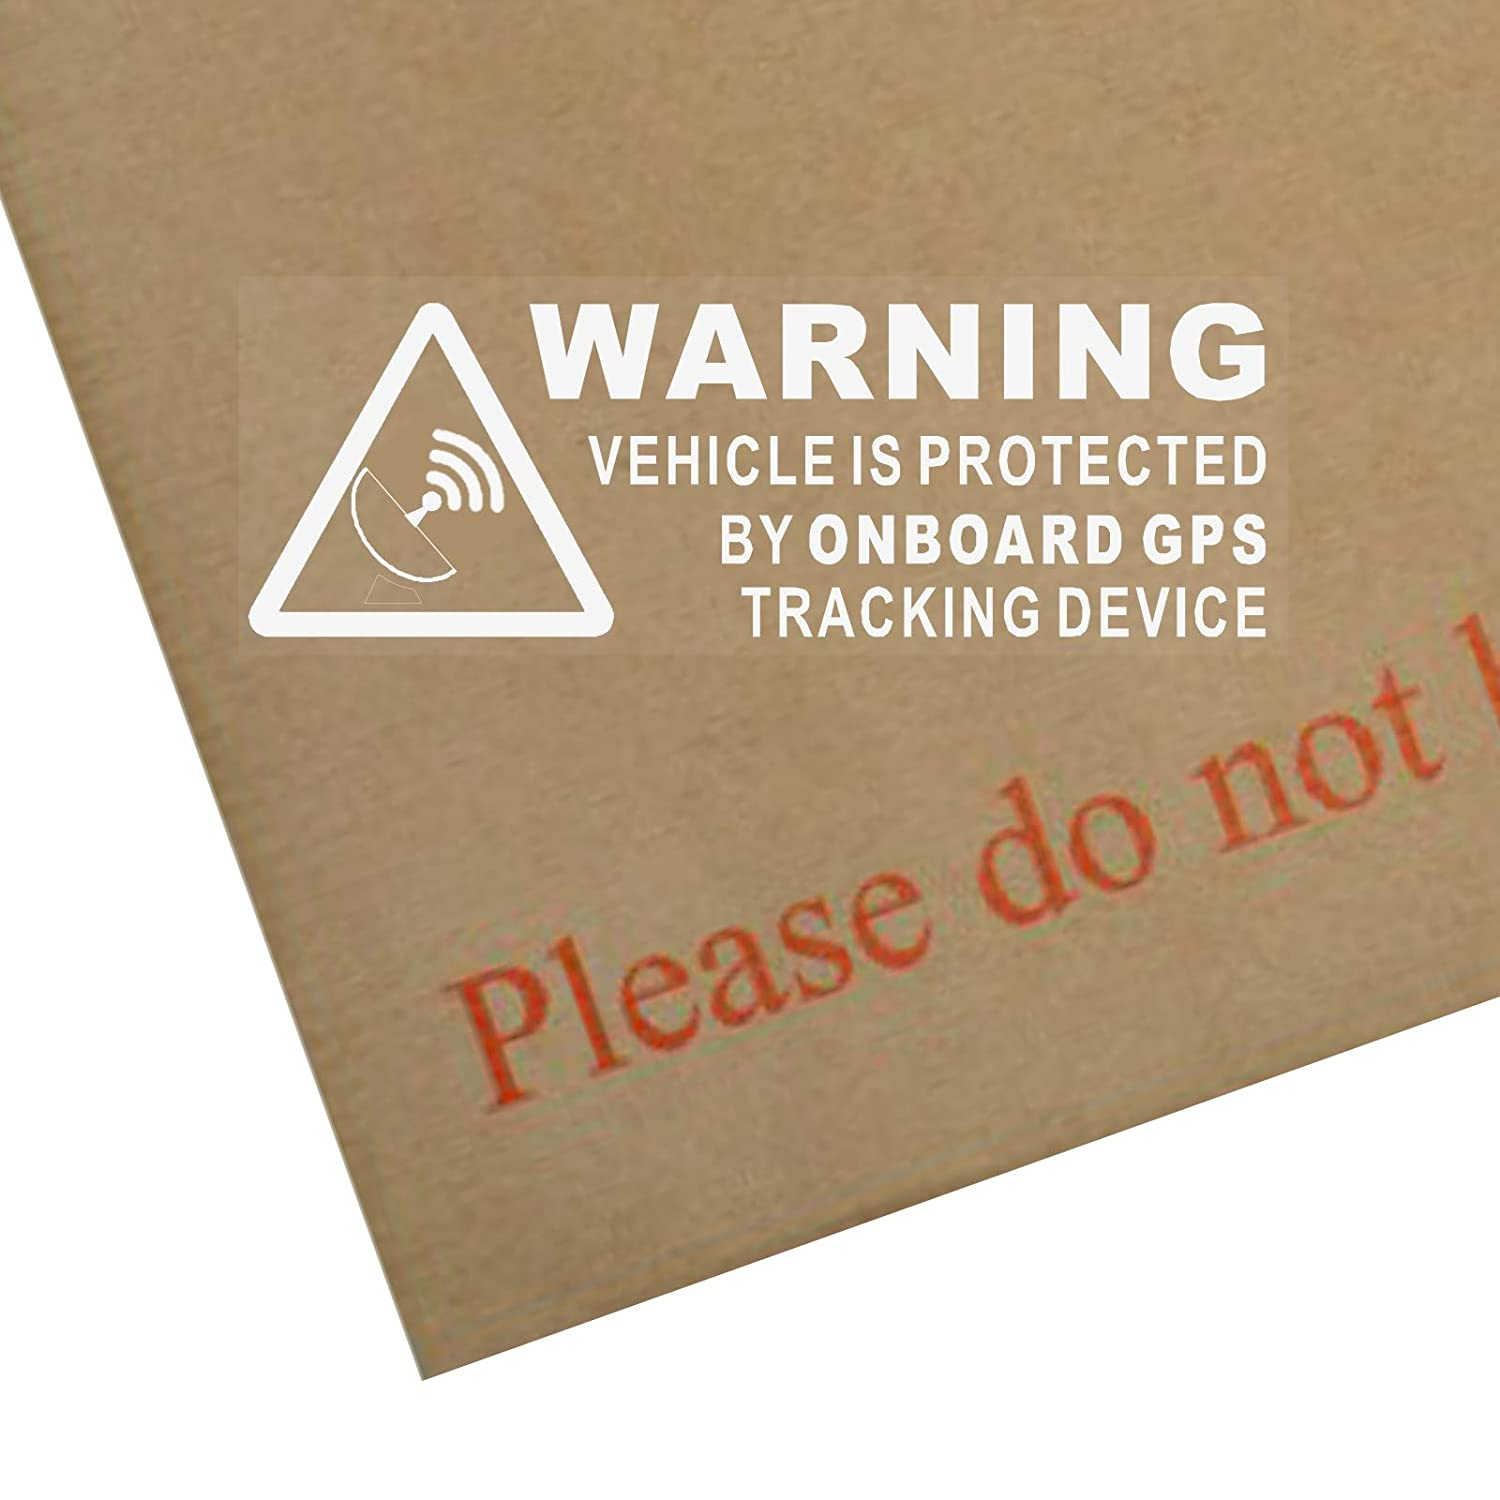 Platinum place 5 x warning on board gps tracking device stickers carvanboatsignsecuresecurityprotectionsafetyalarmdash amazon co uk car